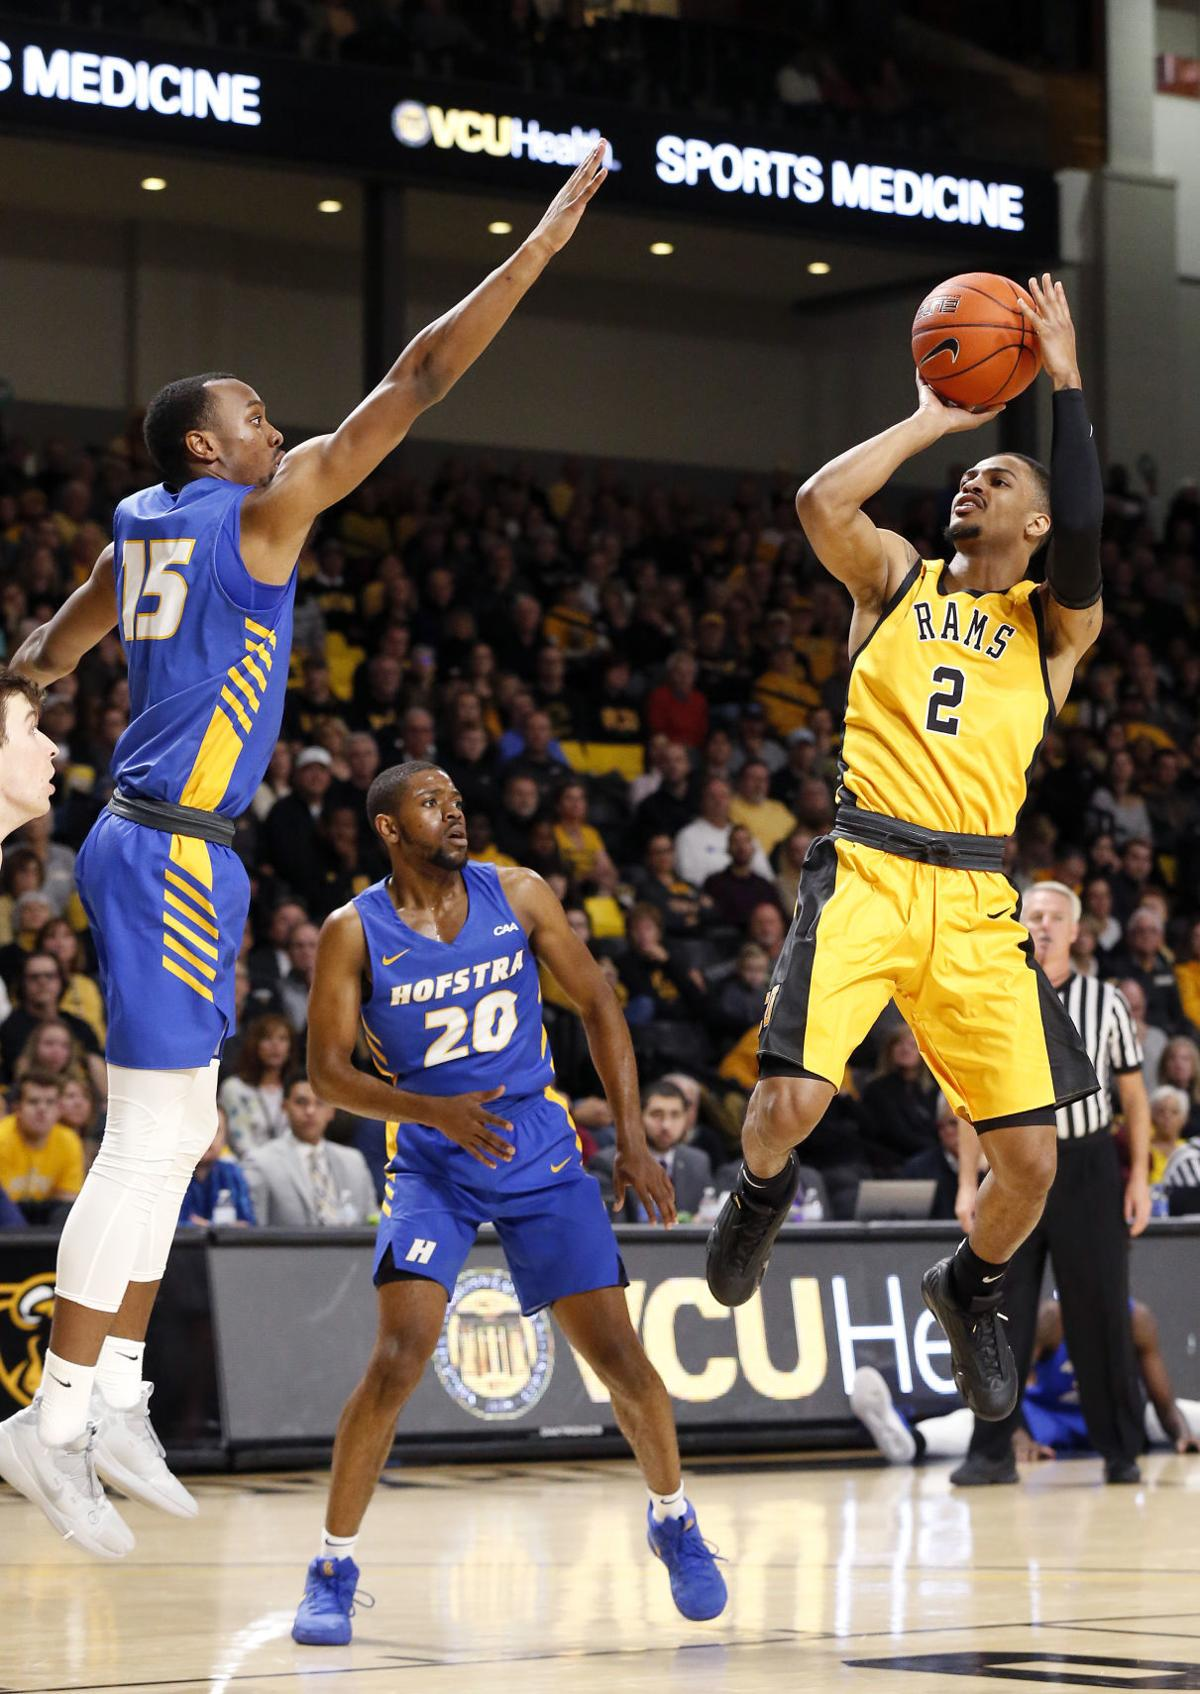 vcu outlasts hofstra for 69 67 victory in overtime vcu